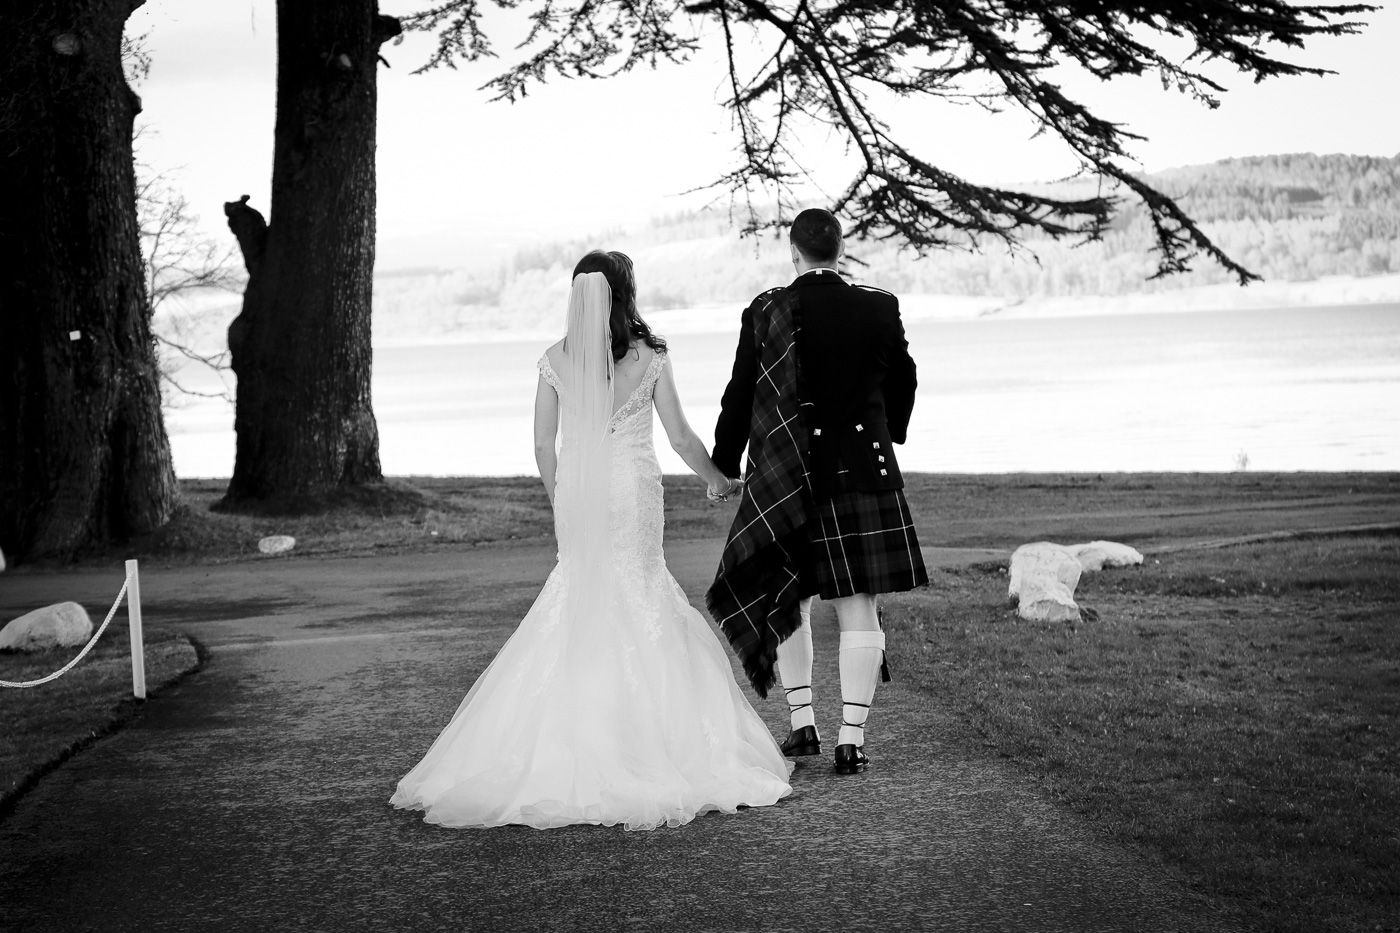 wedding-photography-at-bunchrew-house-inverness-9125